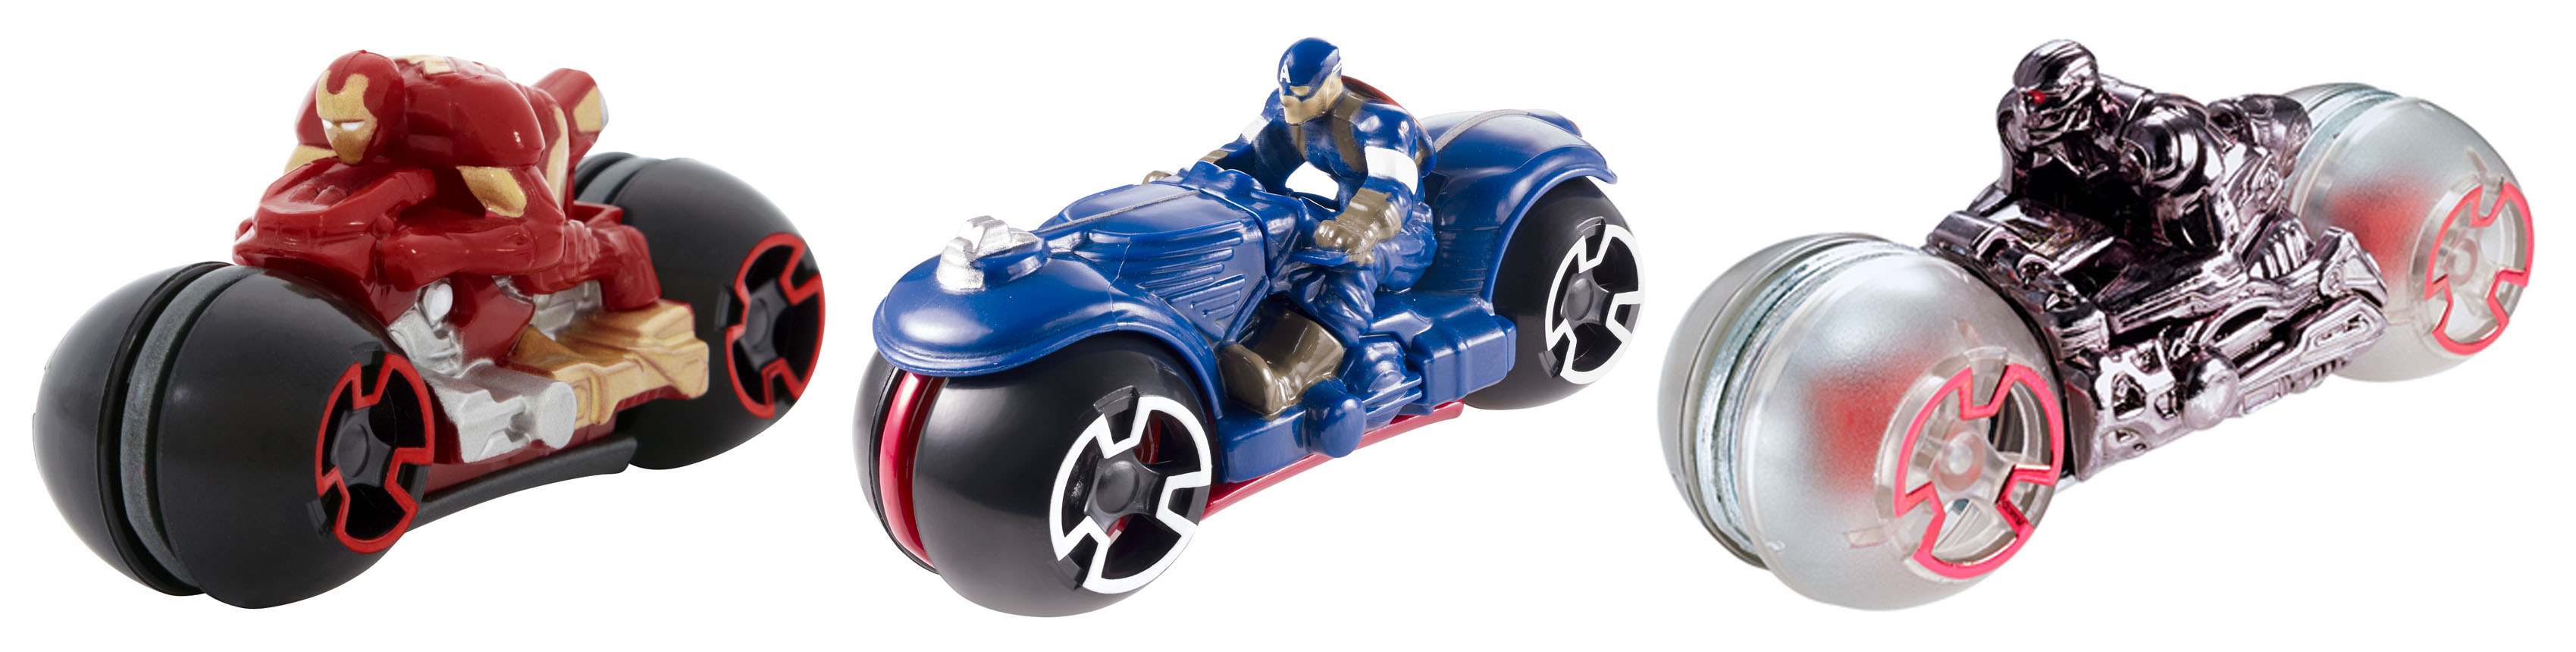 uk availability new authentic ever popular Los Vengadores ahora viajan en Hot Wheels - Dale Tiempo al Juego